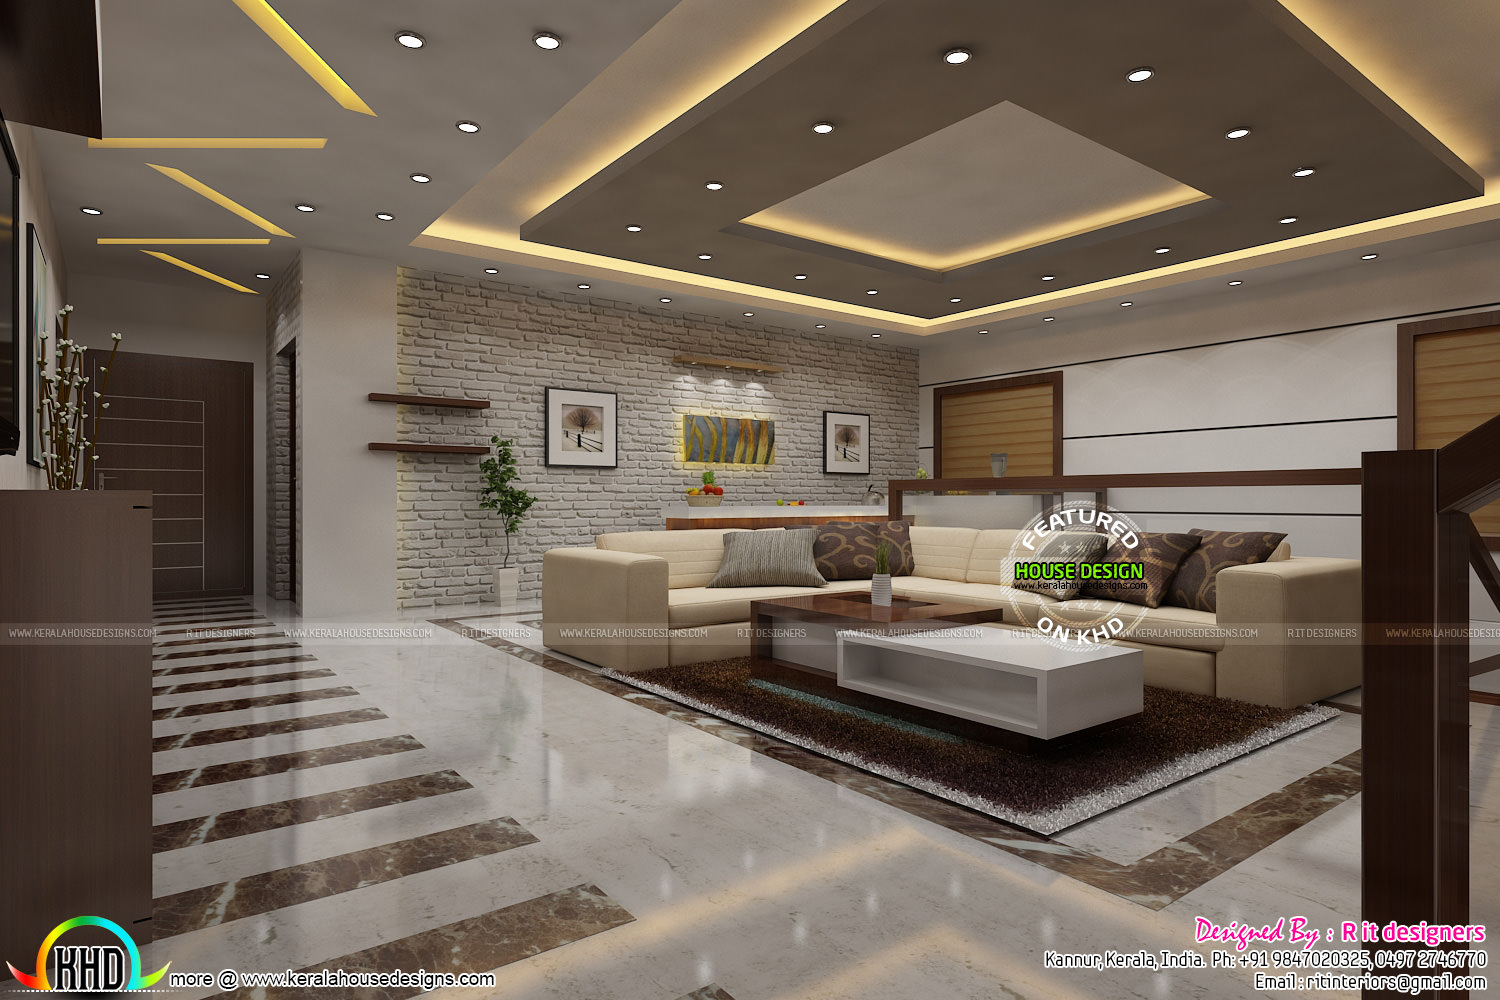 Most modern kerala living room interior kerala home - Interior home design pic ...